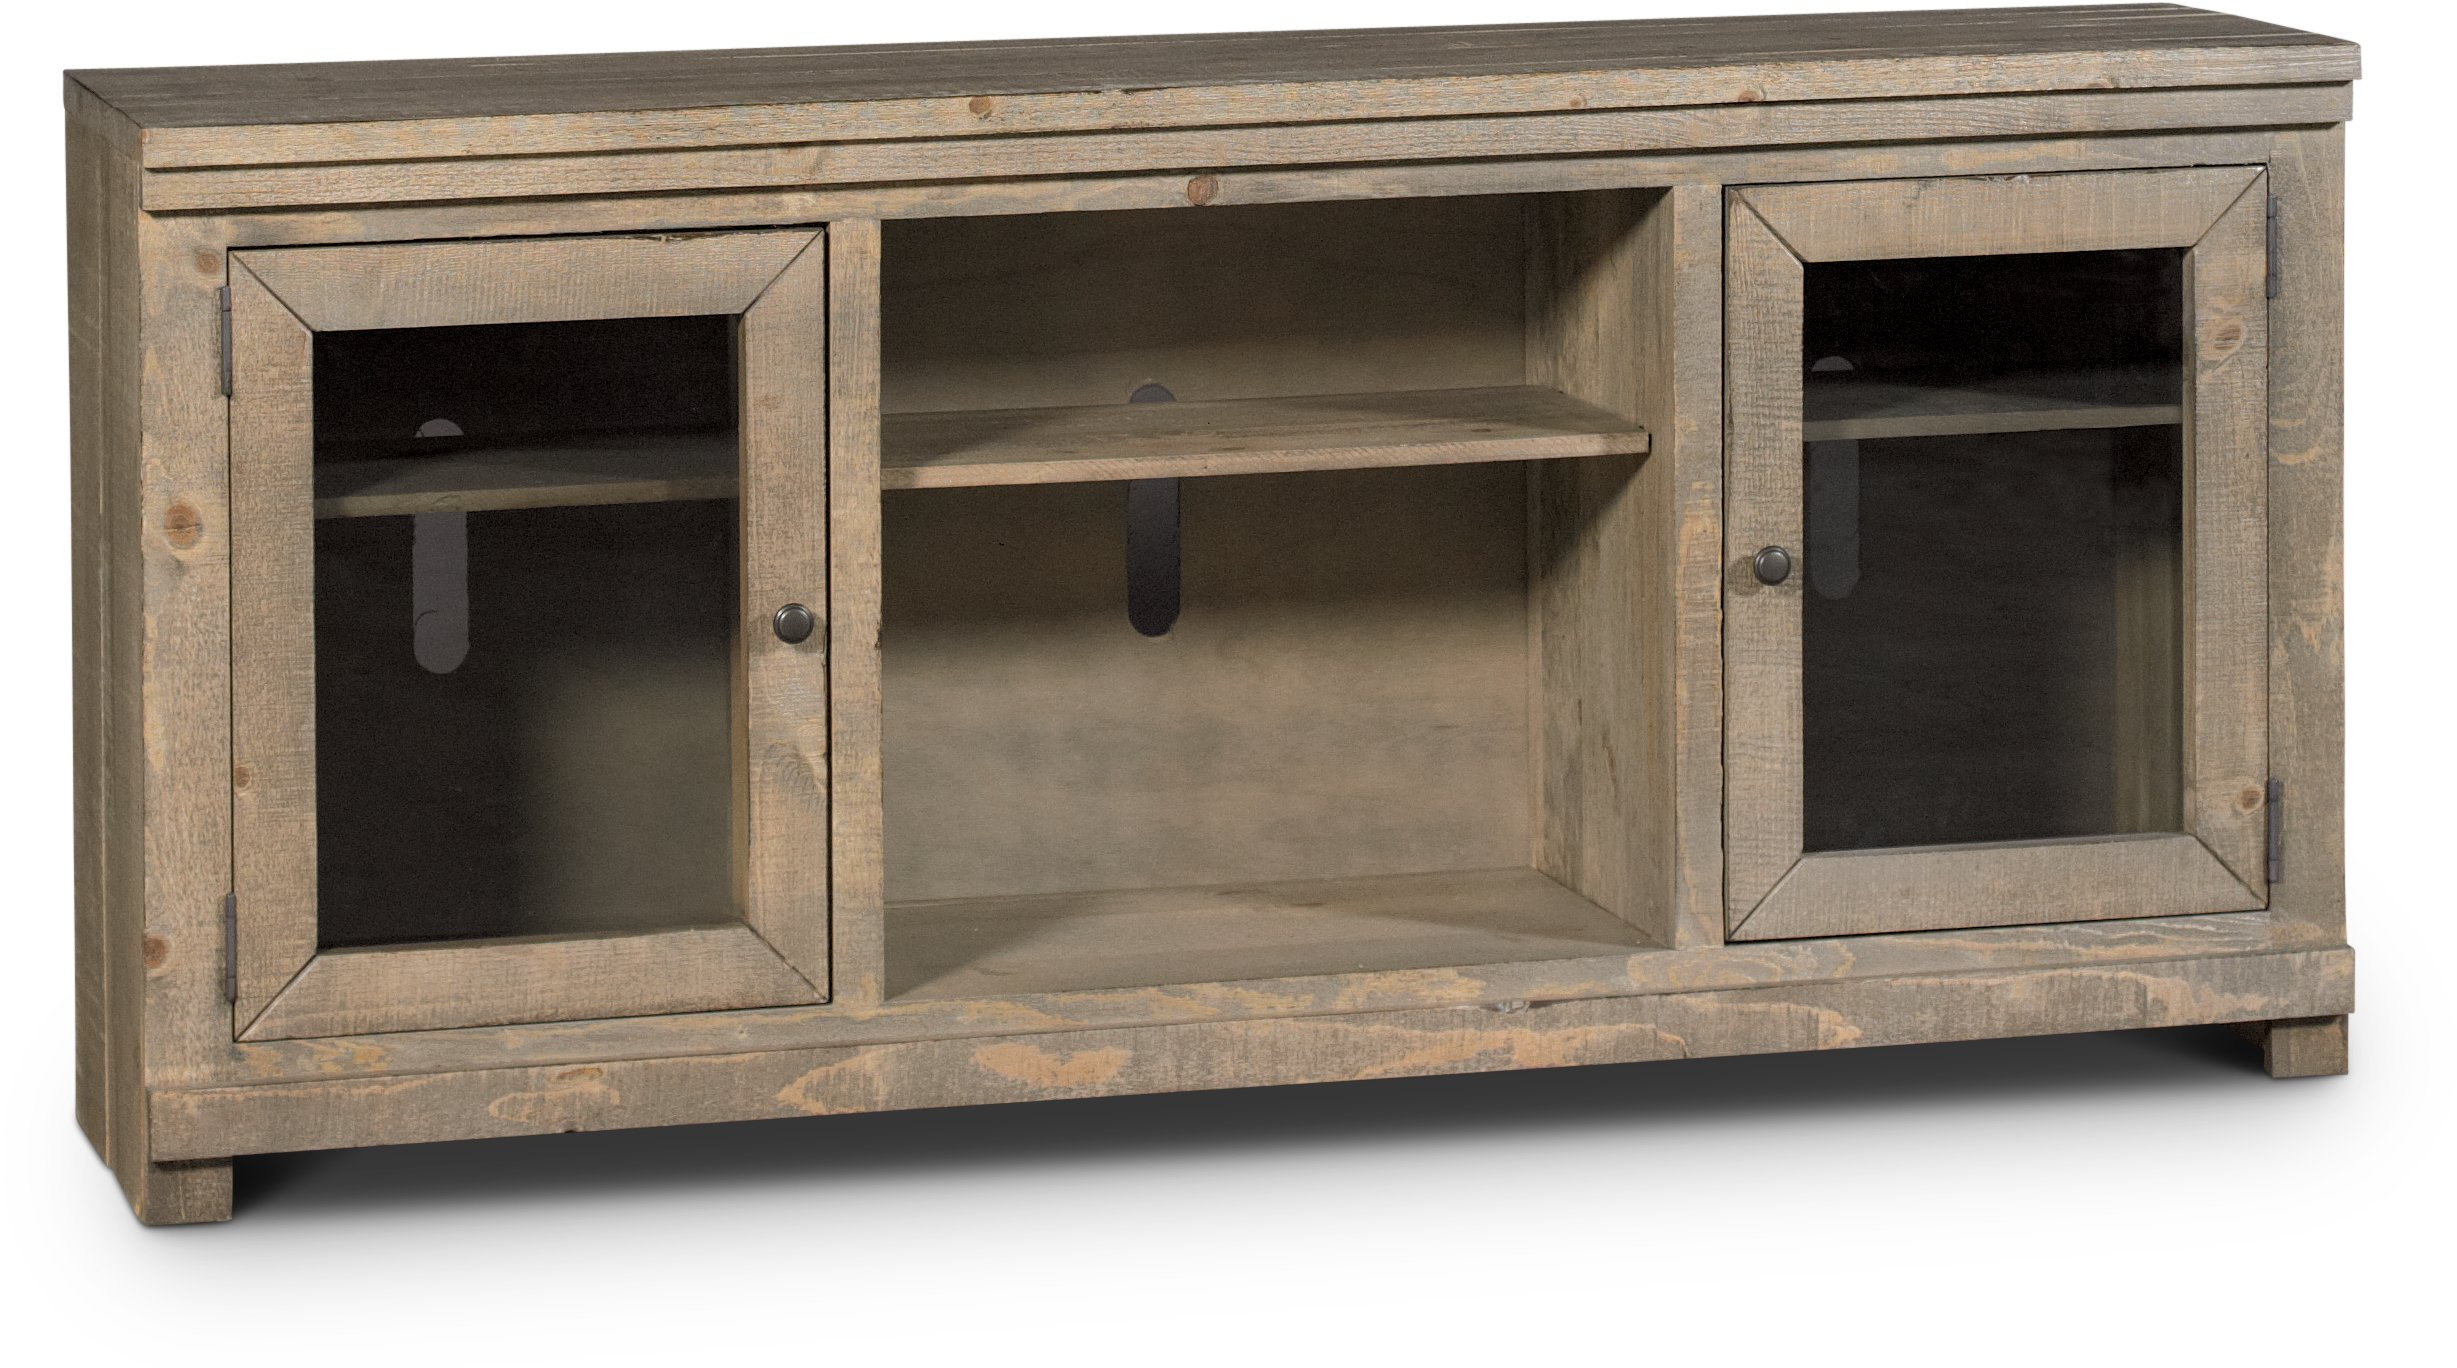 68 Inch Distressed Gray Brown TV Stand   Willow